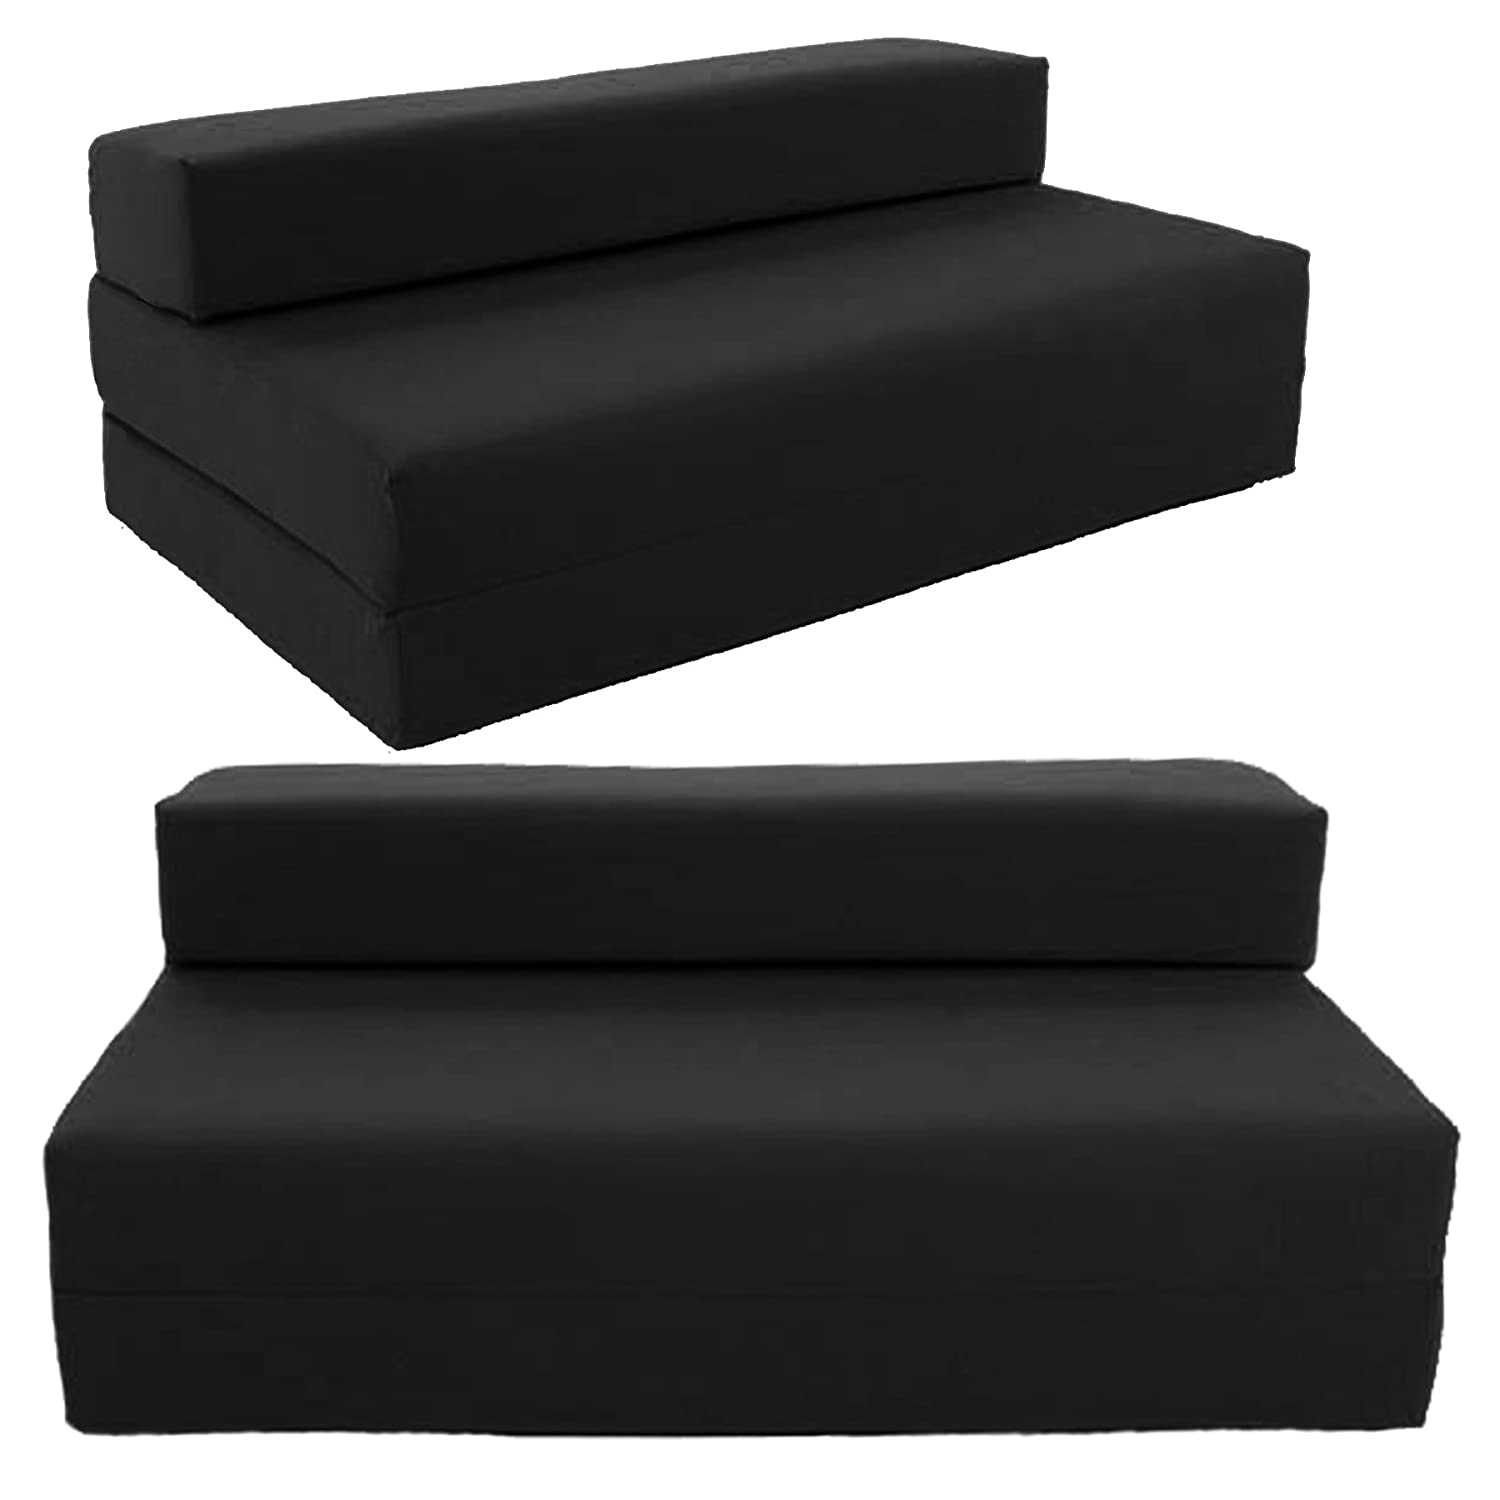 Gilda ® Double Sofa Bed Futon - Black Indoor/Outdoor Stain Resistant  Fabric: Amazon.co.uk: Kitchen & Home